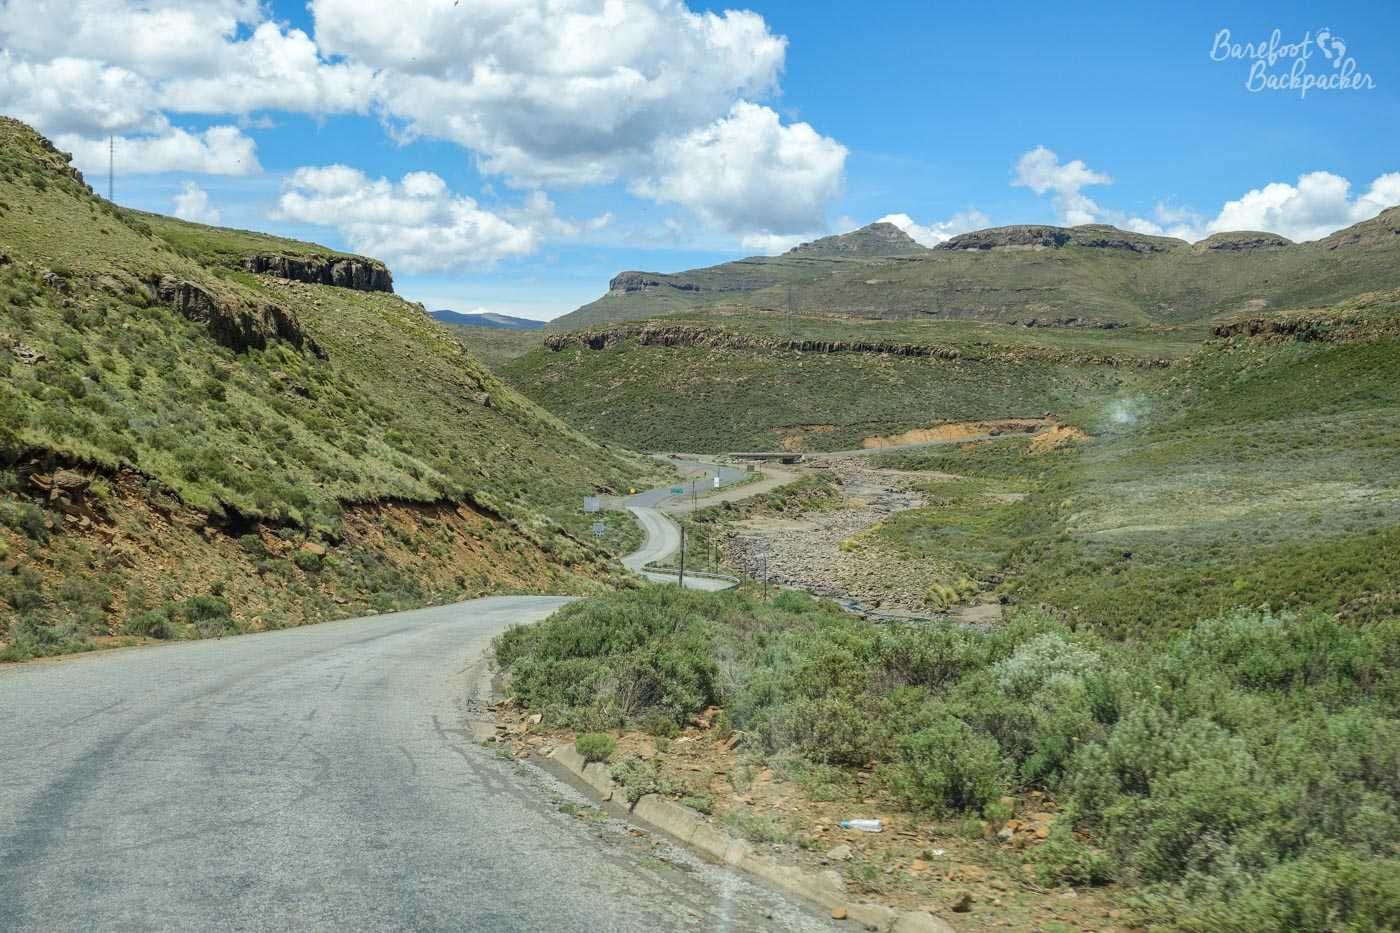 Scenery on the road from Maseru to Mokhotlong, Lesotho, taken from inside the minibus